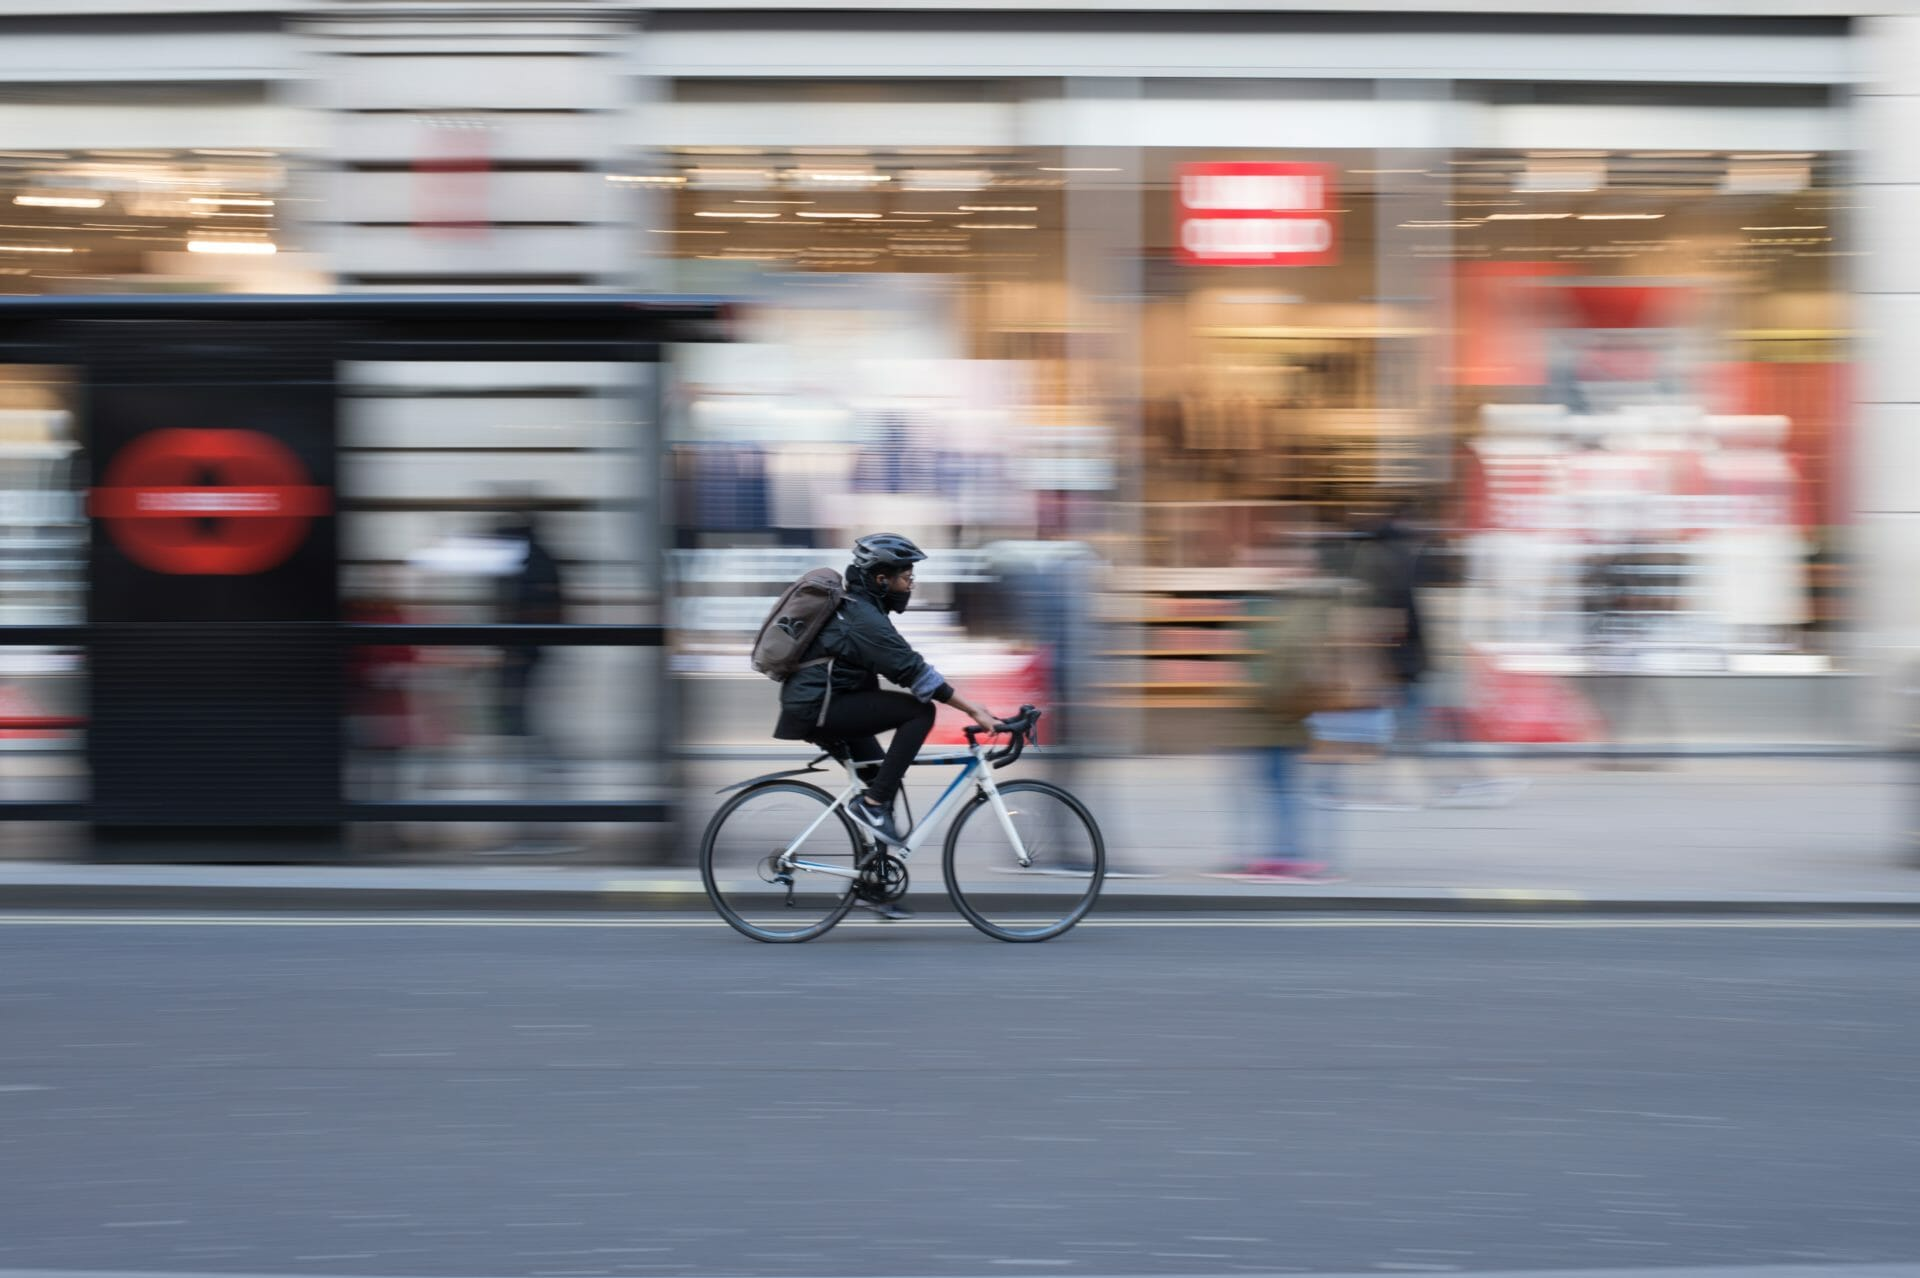 ride a bike in the city